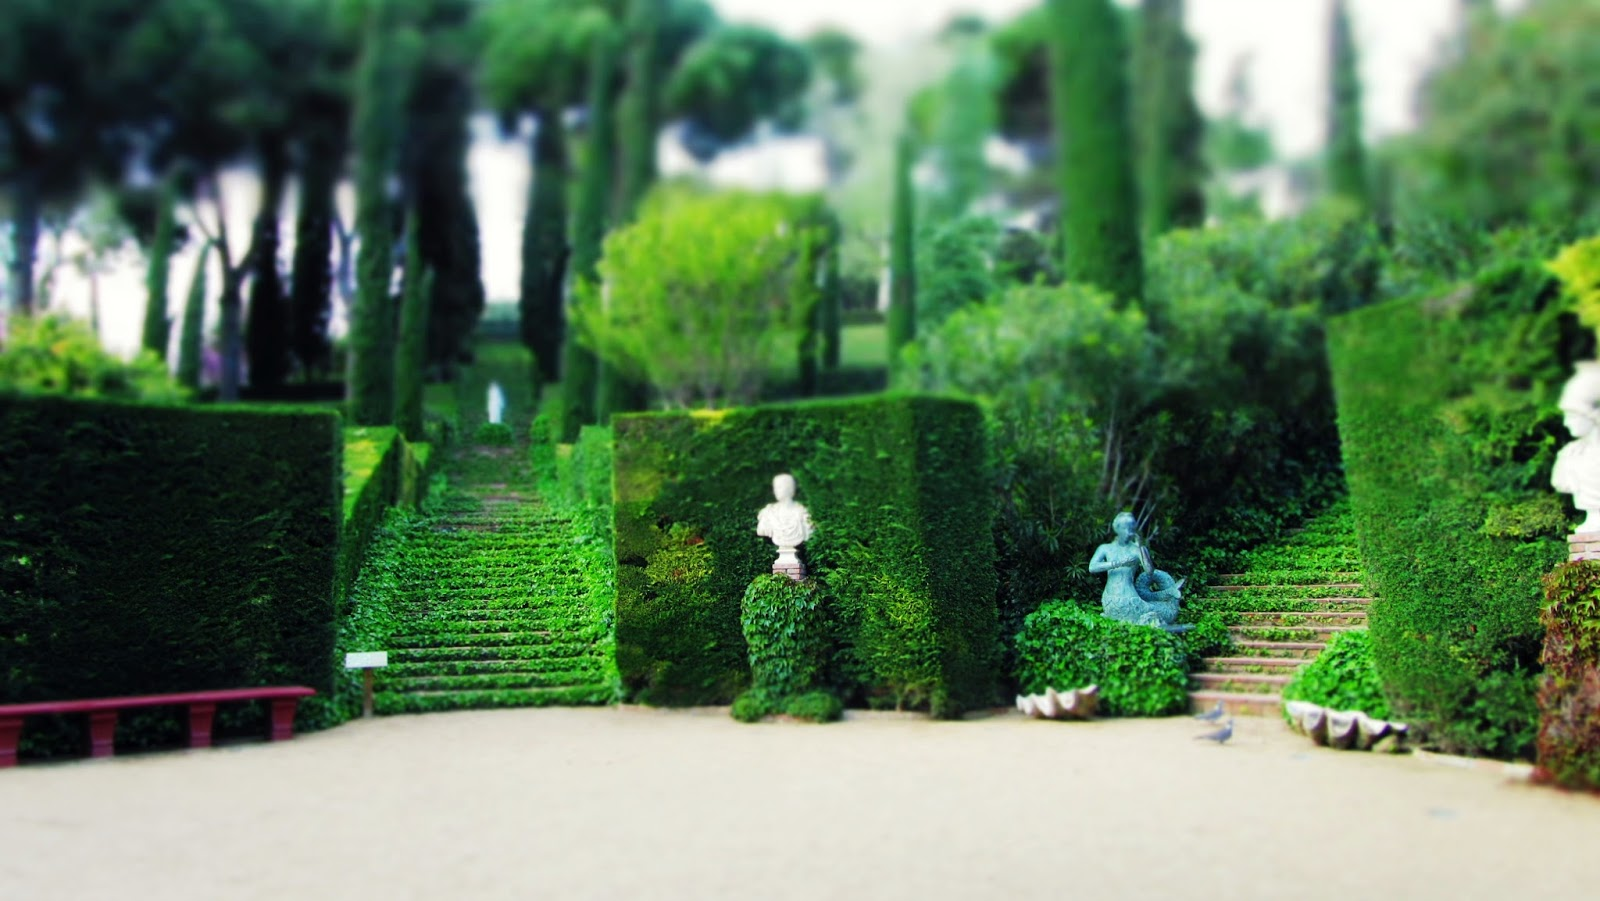 http://sussysmediterraneantreasures.blogspot.de/2013/02/santa-clotilde-gardens-place-between.html